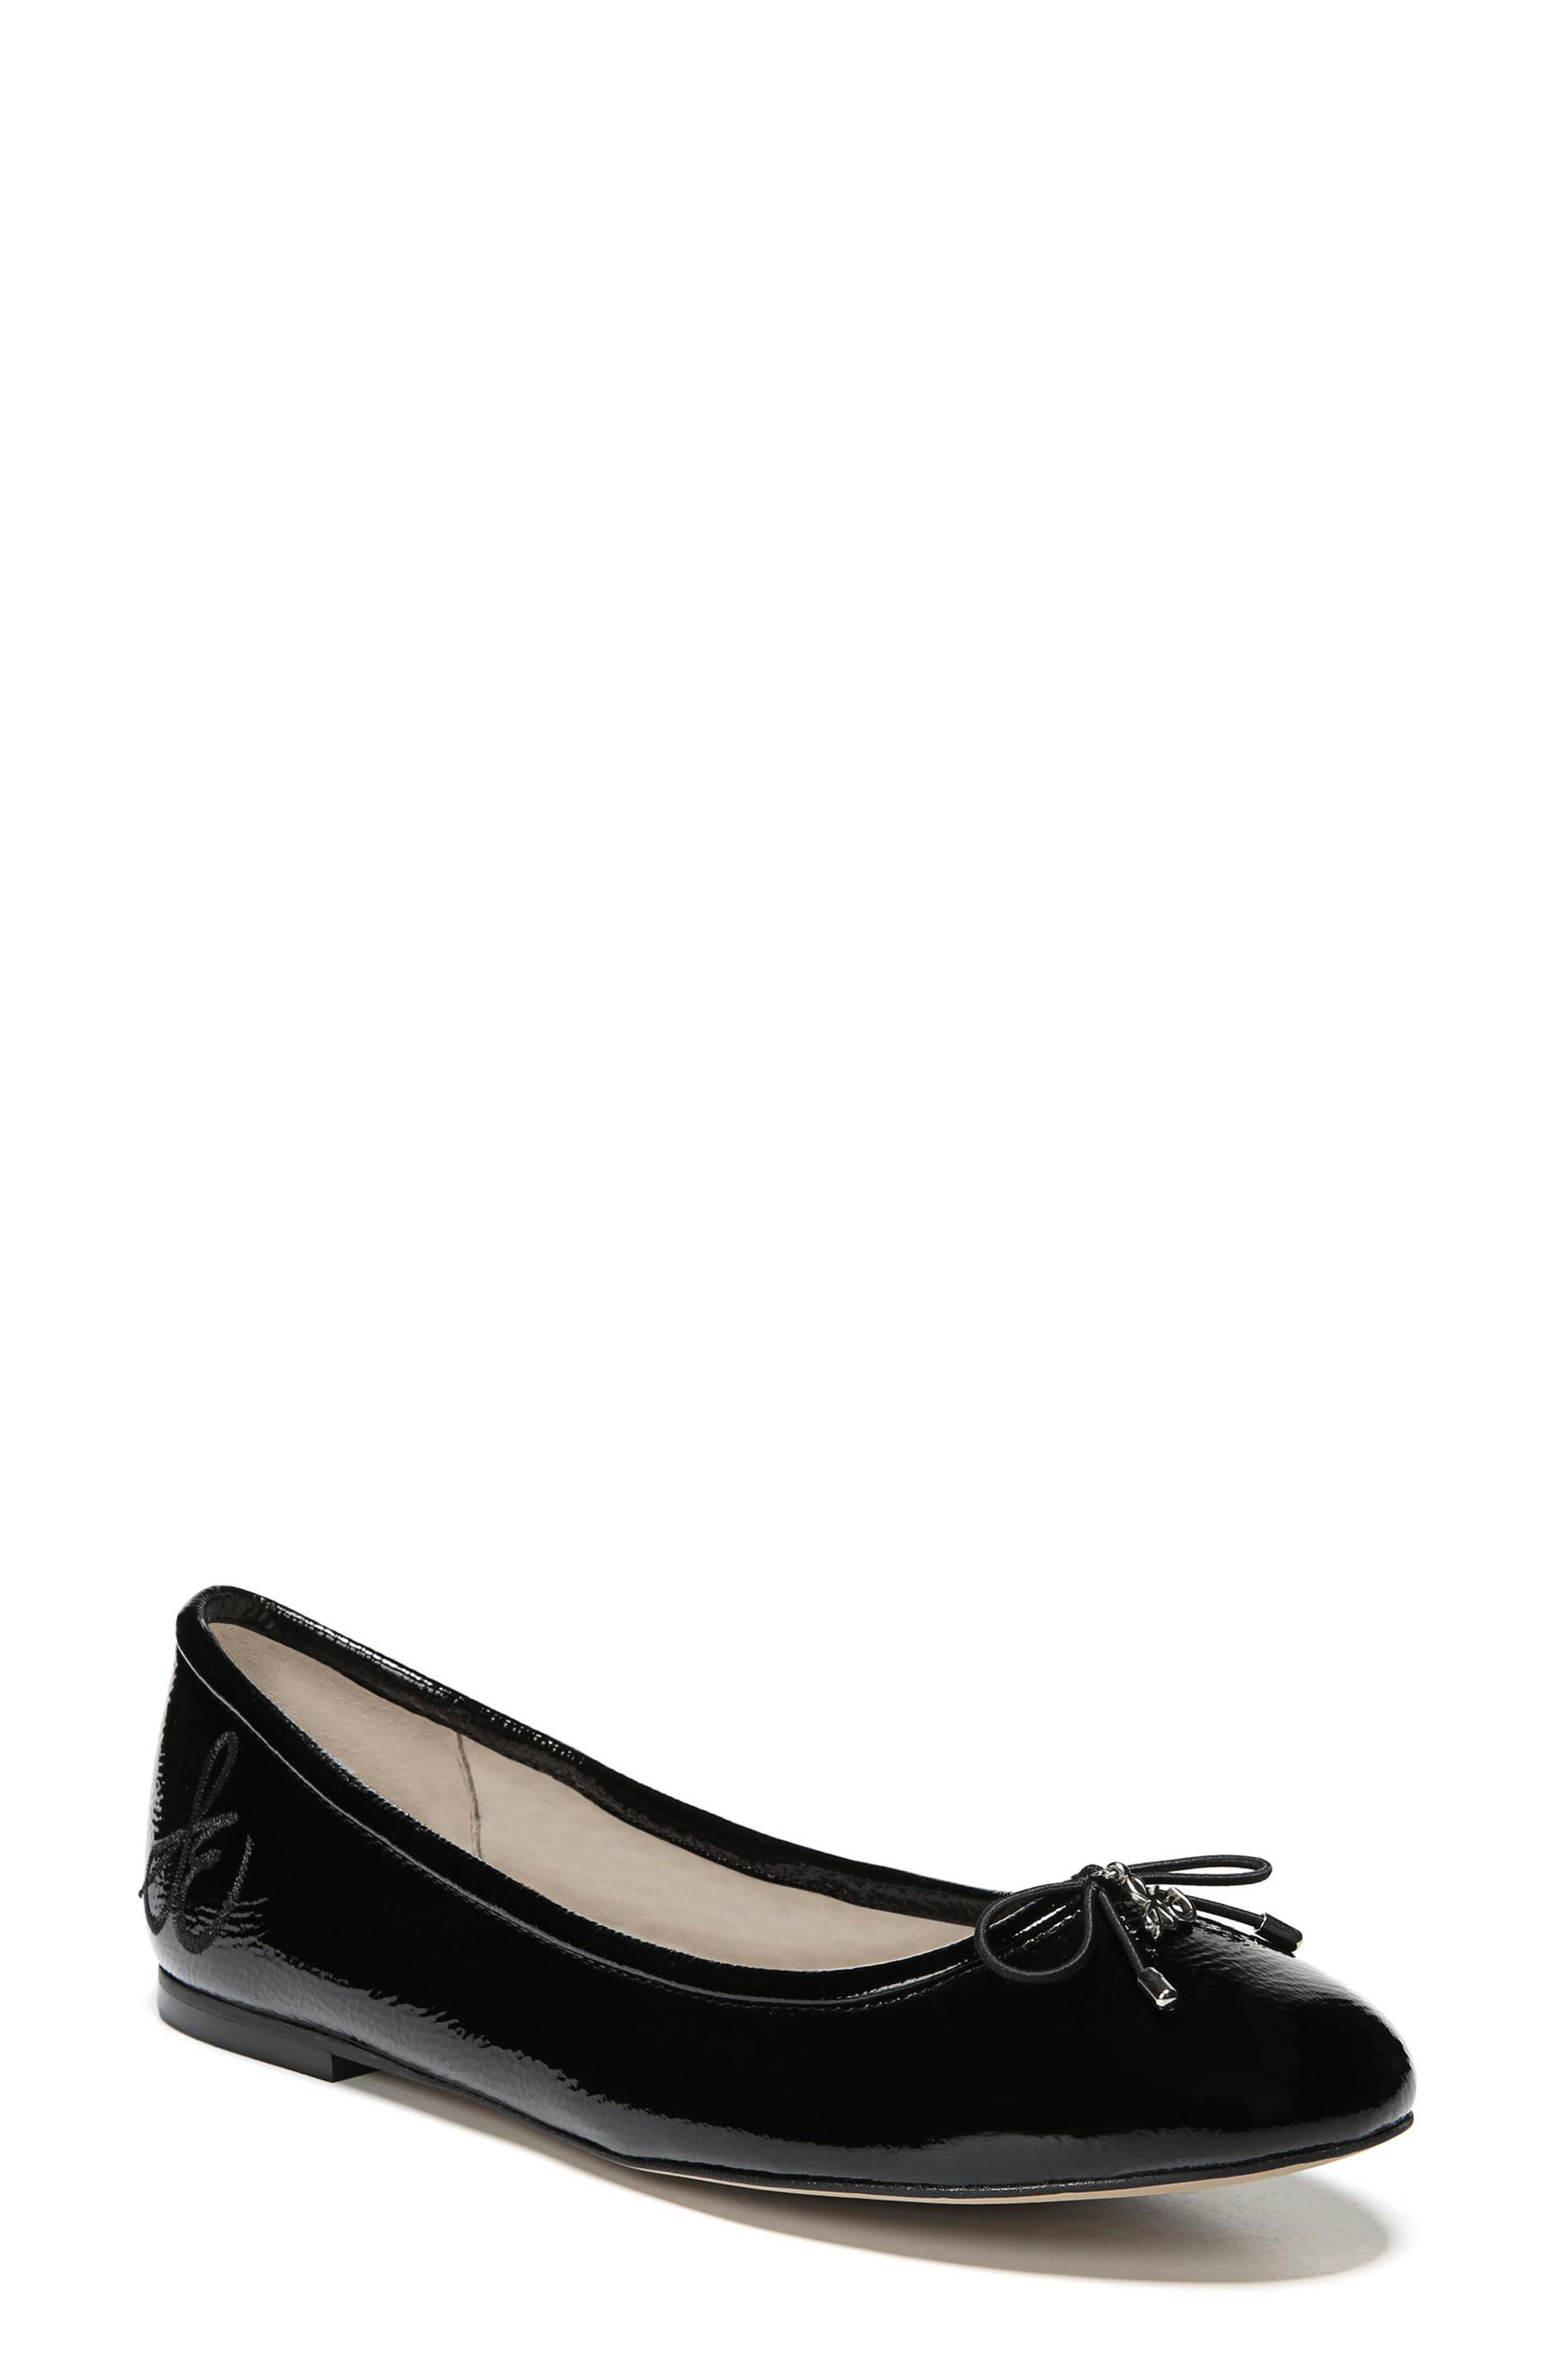 Felicia Flat,                         Main,                         color, BLACK CRINKLE PATENT LEATHER